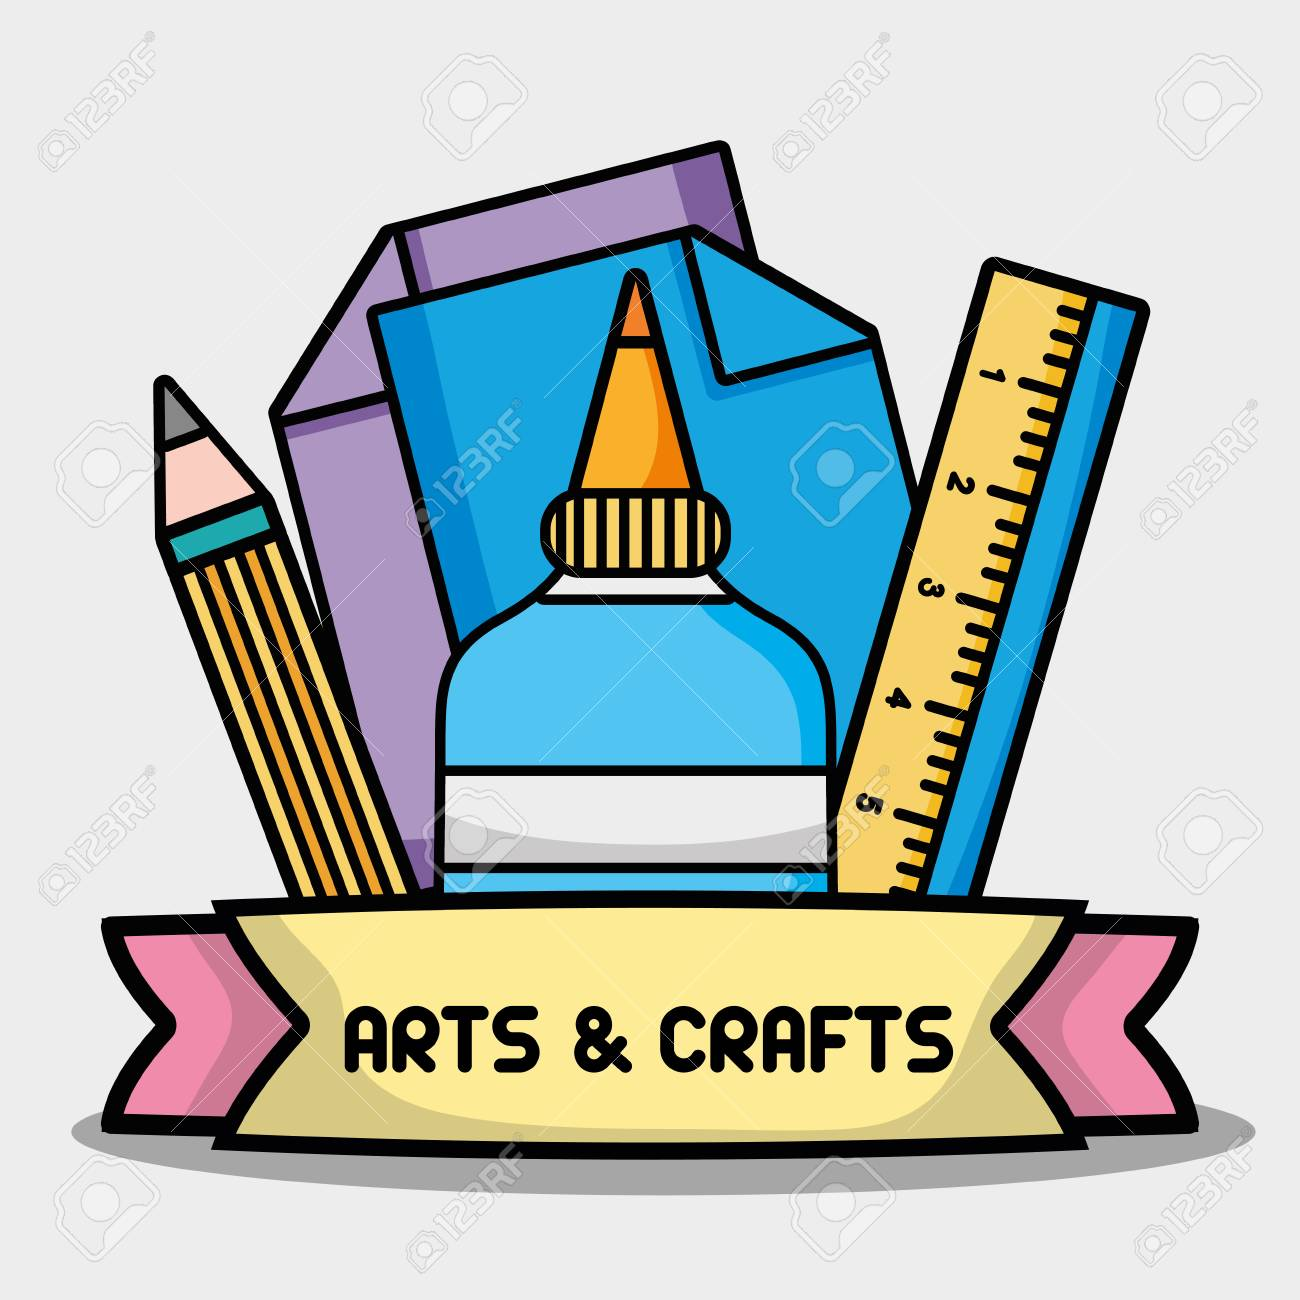 creative object to art and craft design.